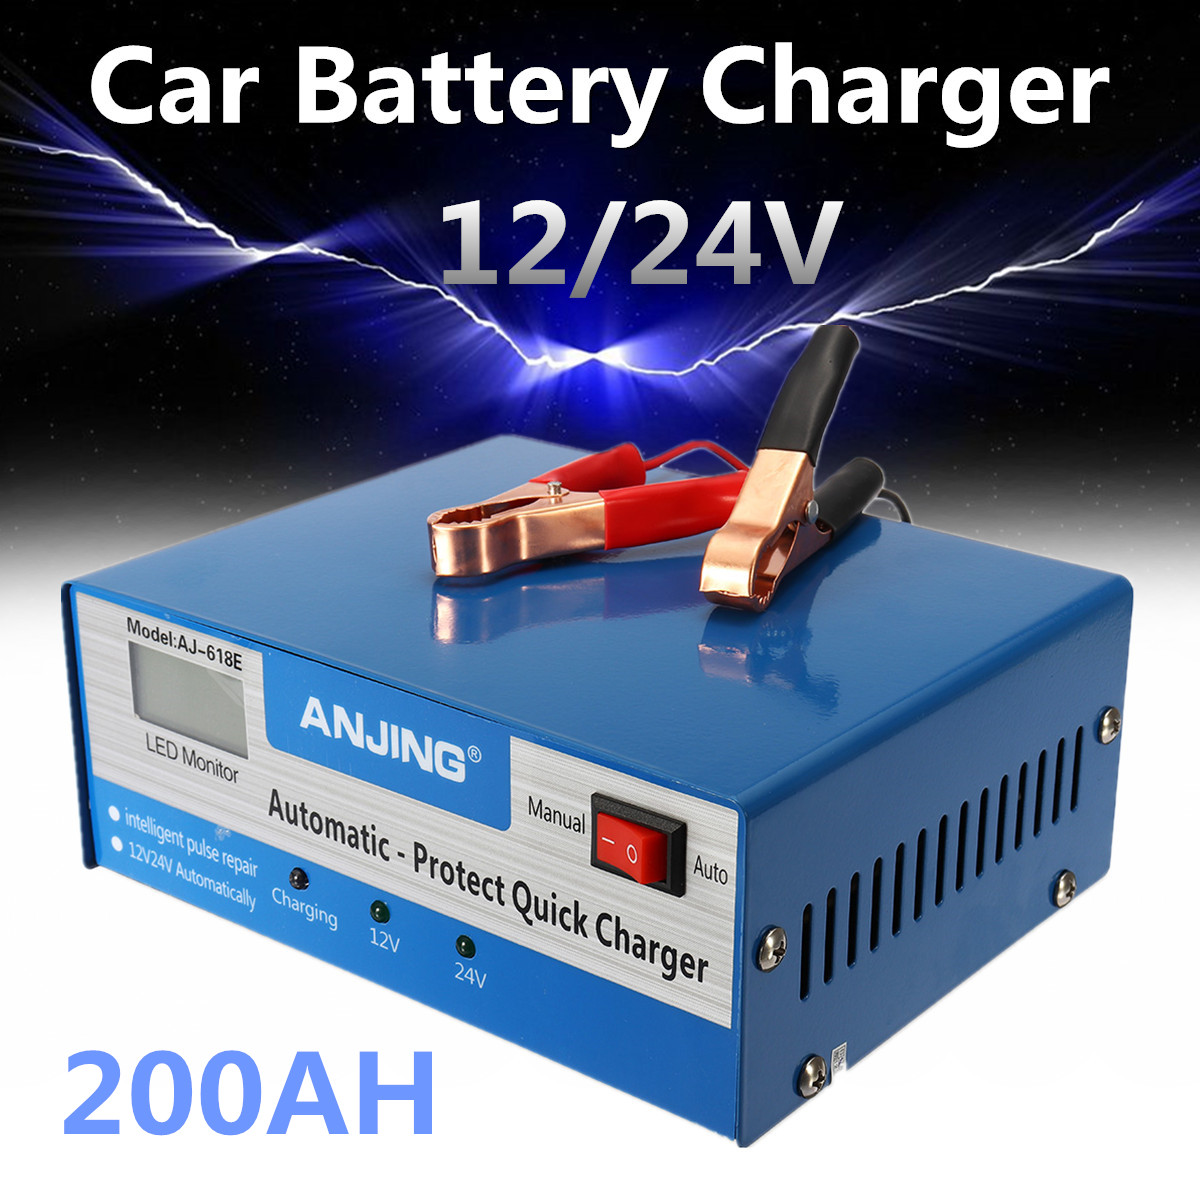 Car Battery Charger Intelligent Pulse Repair Full Automatic Protect Quick Chargers 130V-250V 200AH 12/24V With Adapter